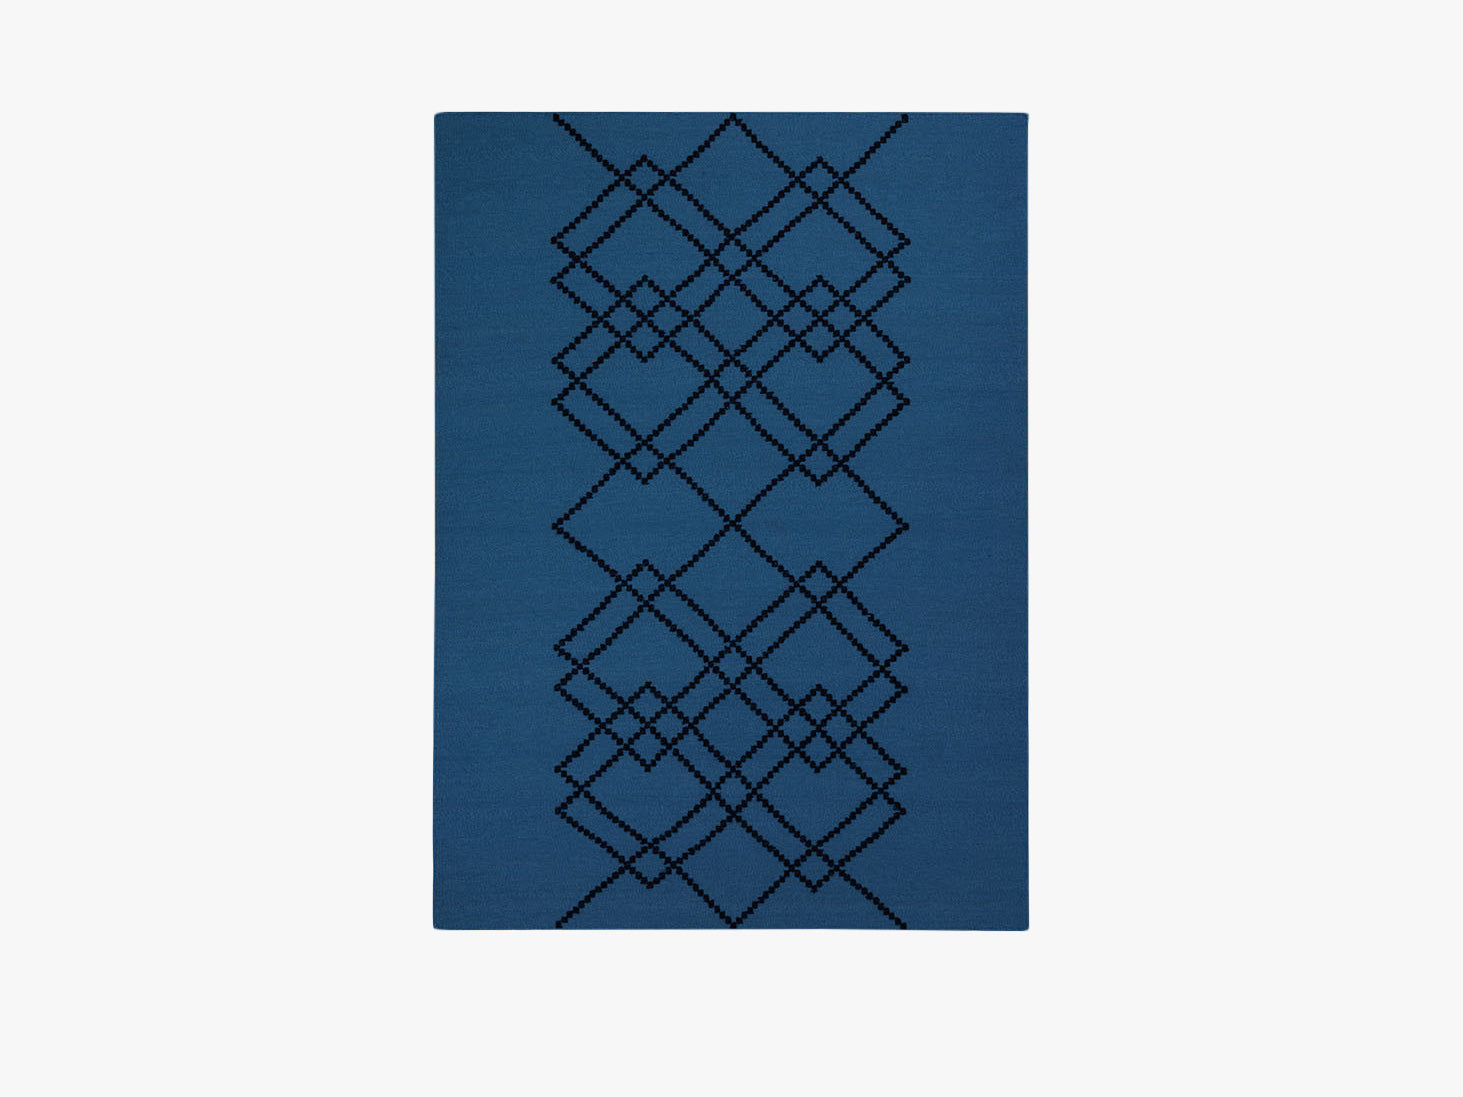 Rug Borg - 140x200 - Royal Blue fra Louise Roe